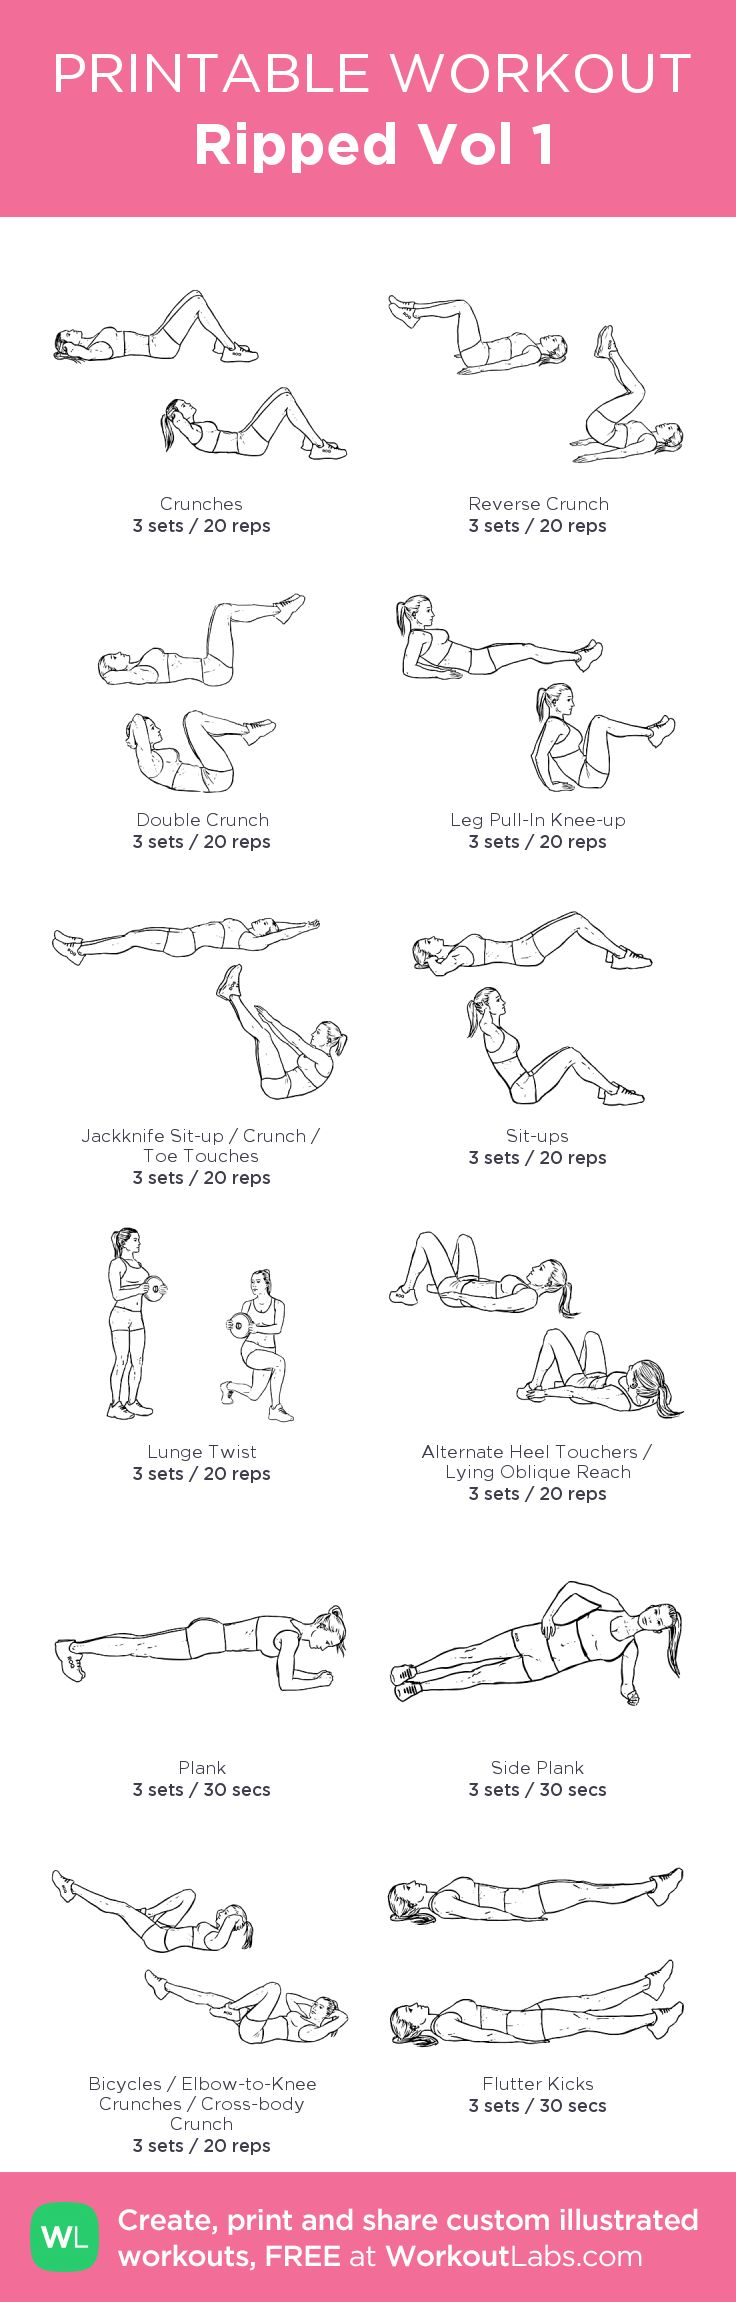 Ripped Vol 1:my visual workout created at WorkoutLabs.com • Click through to customize and download as a FREE PDF! #customworkout